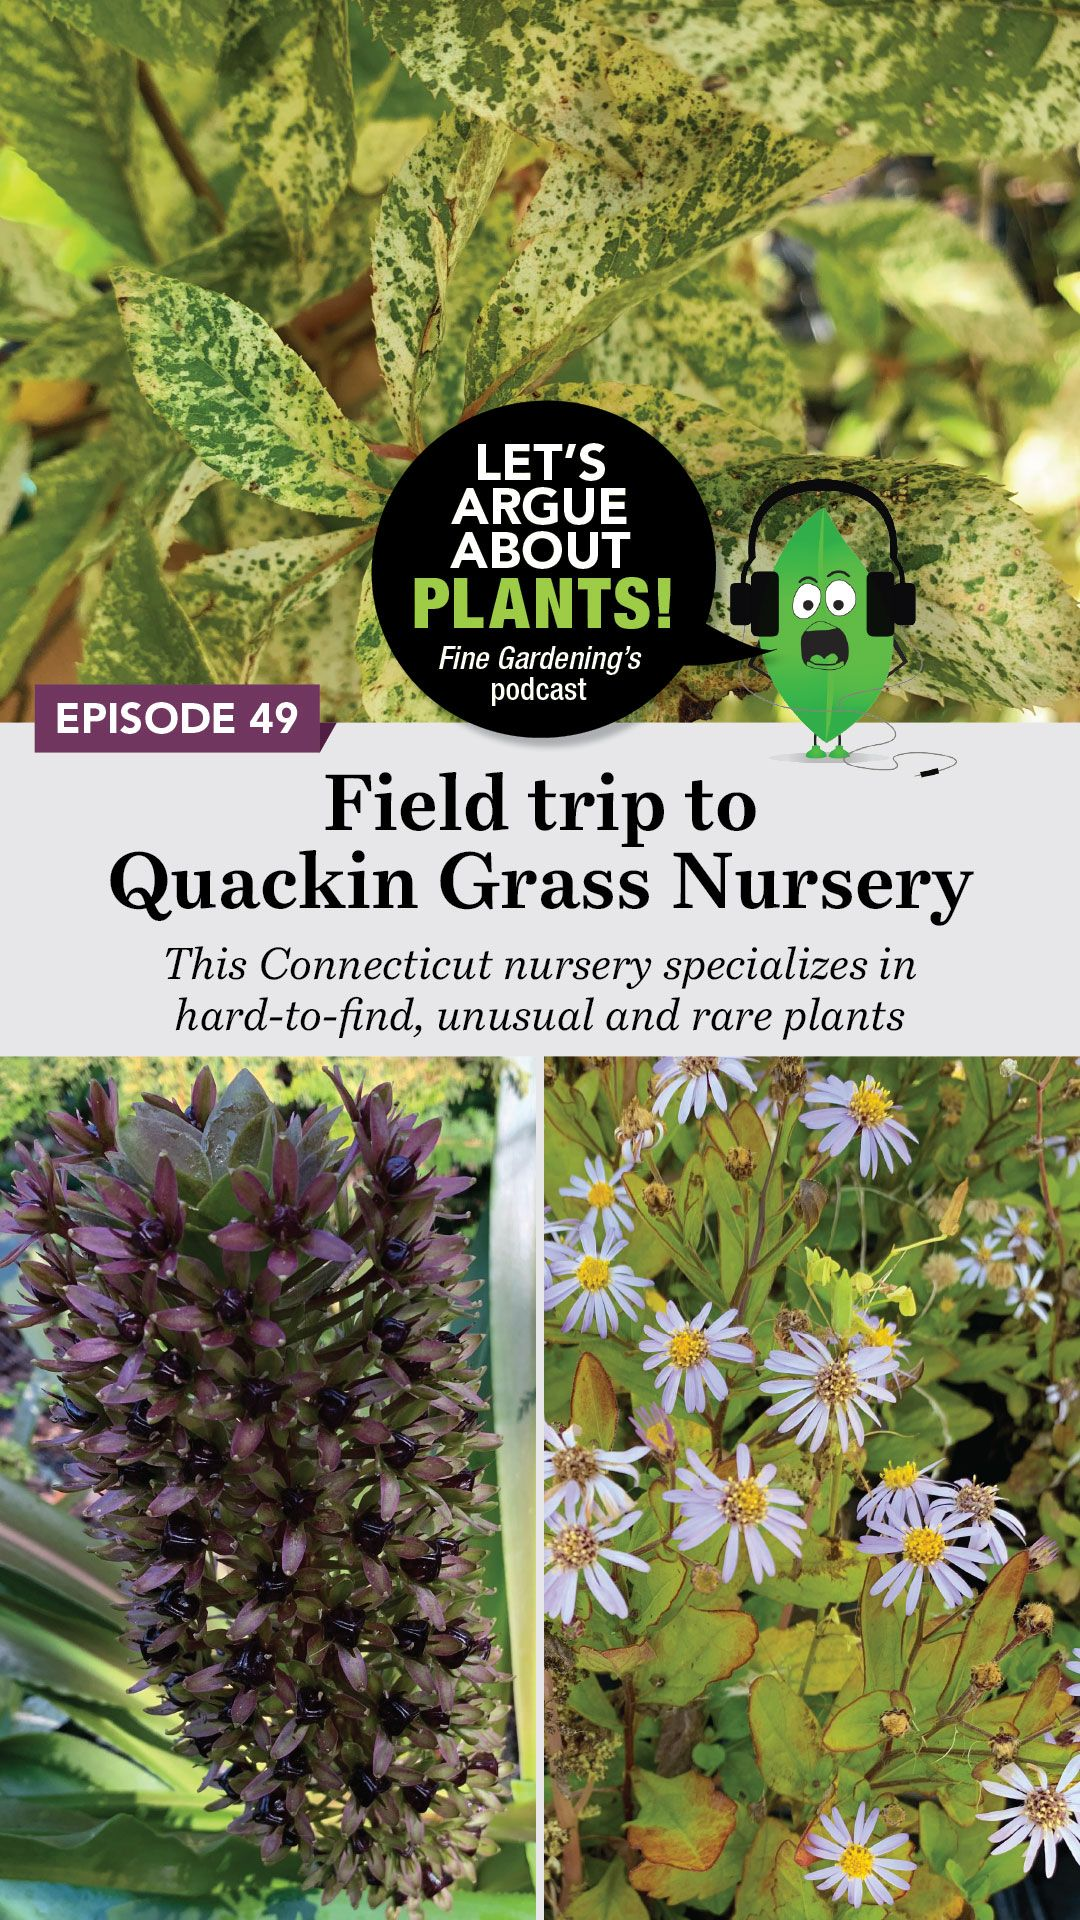 Episode 49 Visit To Quackin Grass Nursery With Images Fine